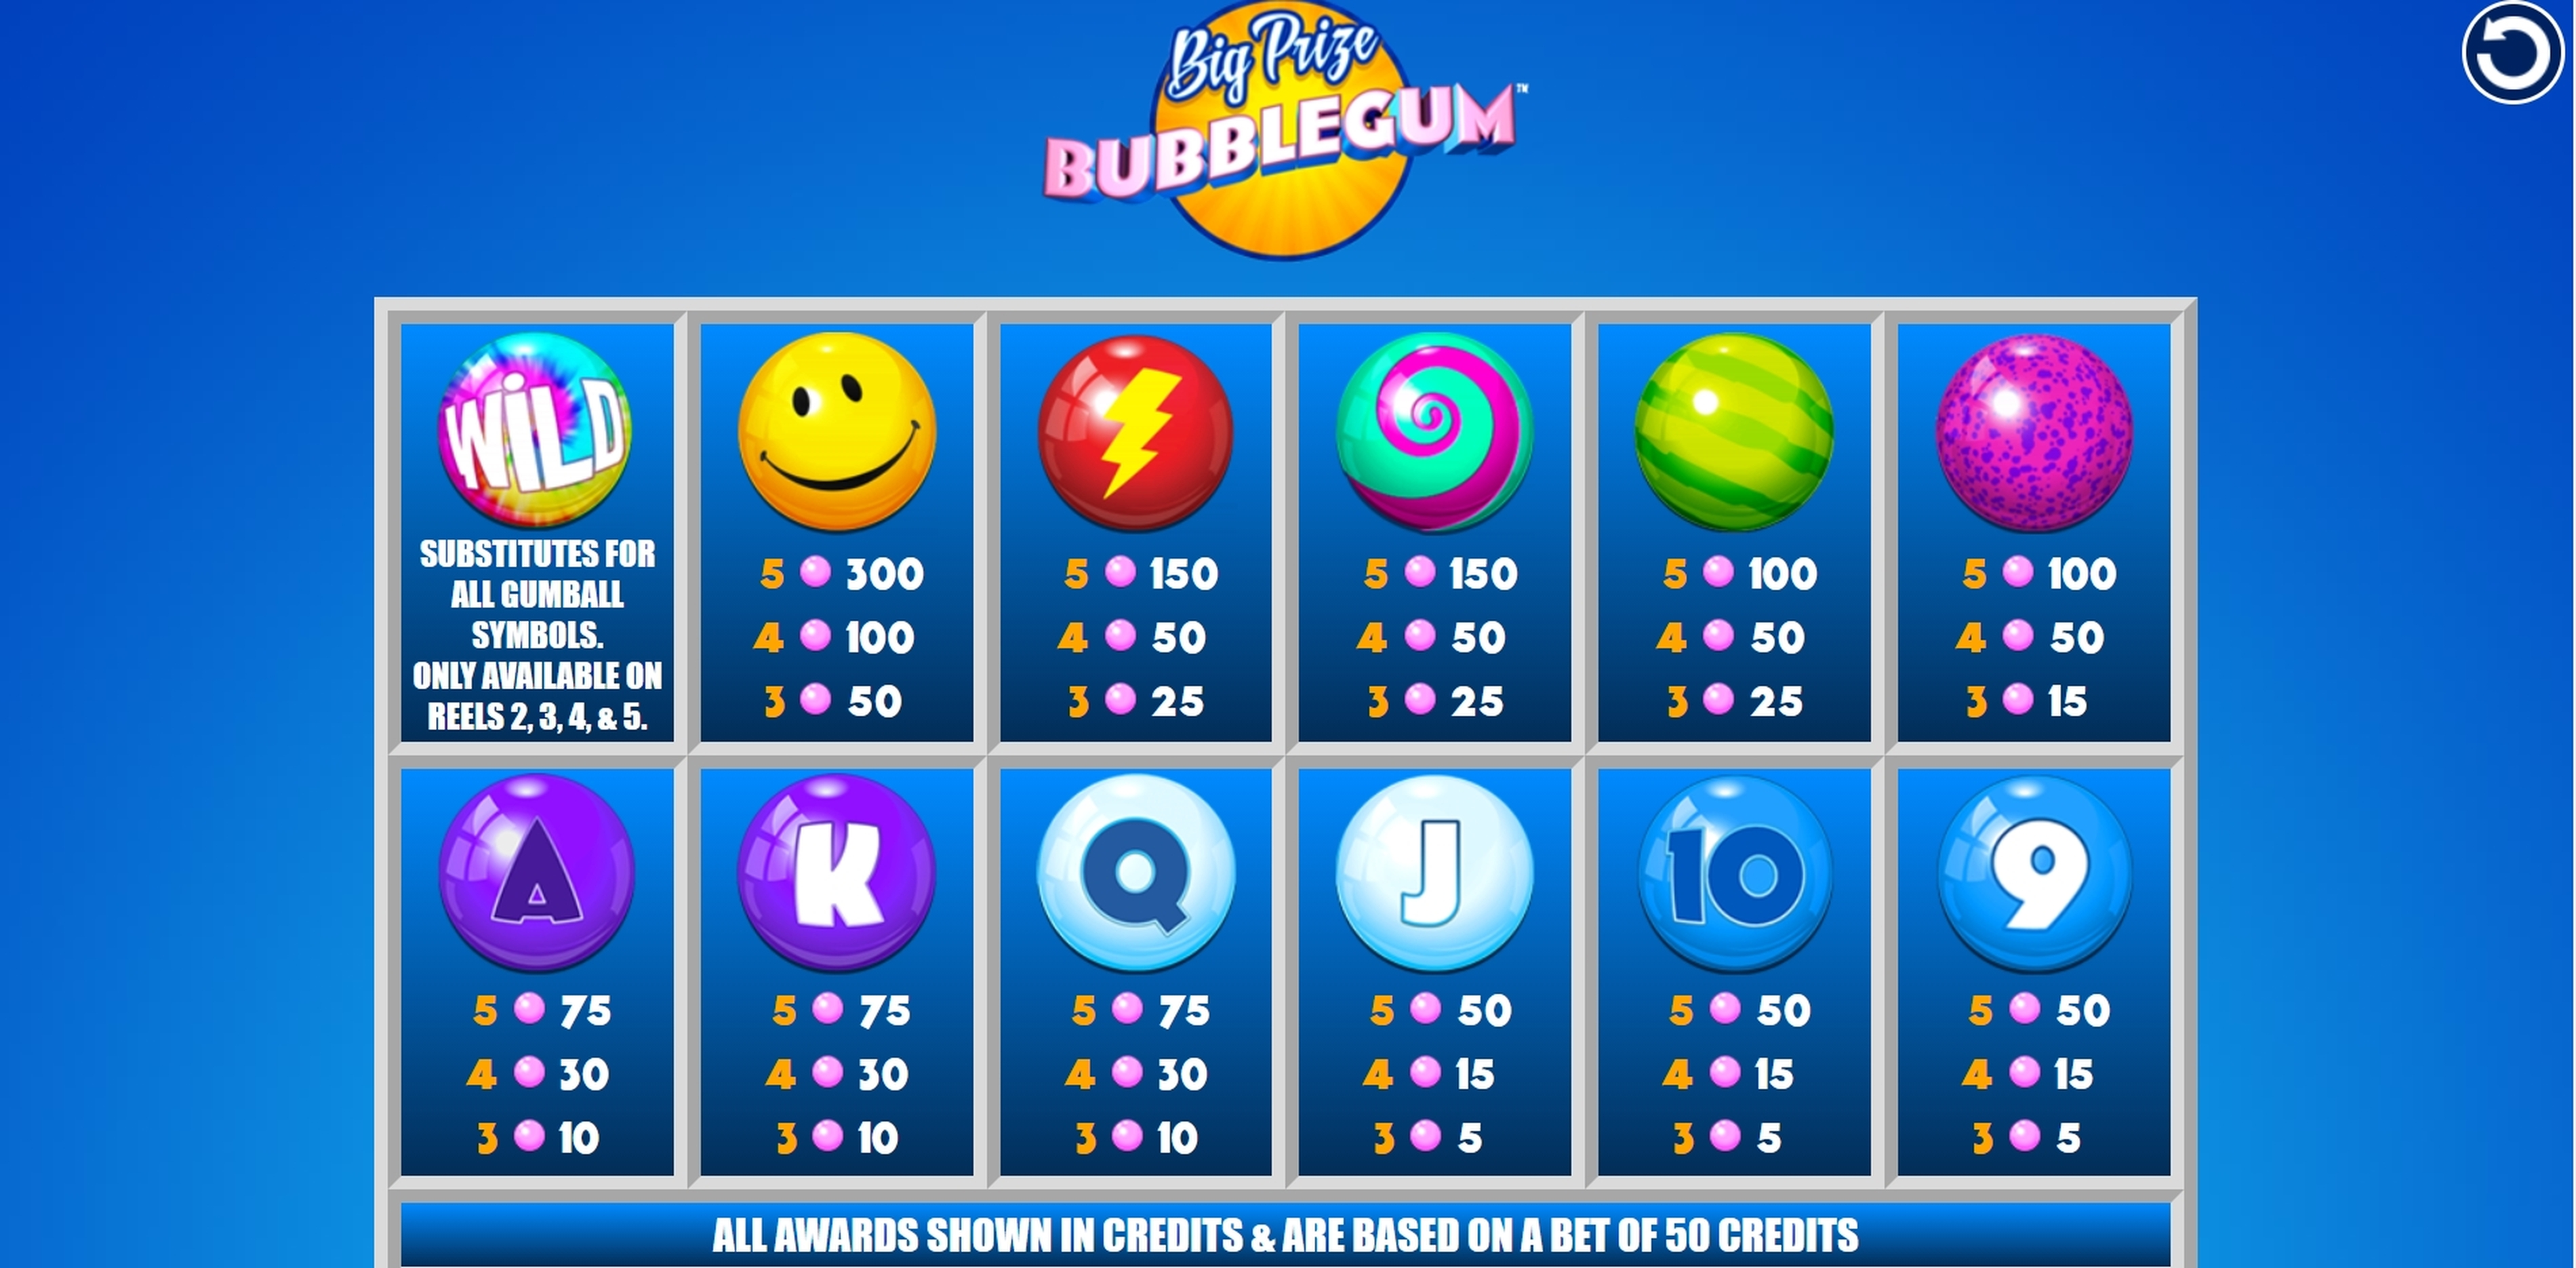 Info of Big Prize Bubblegum Slot Game by Incredible Technologies